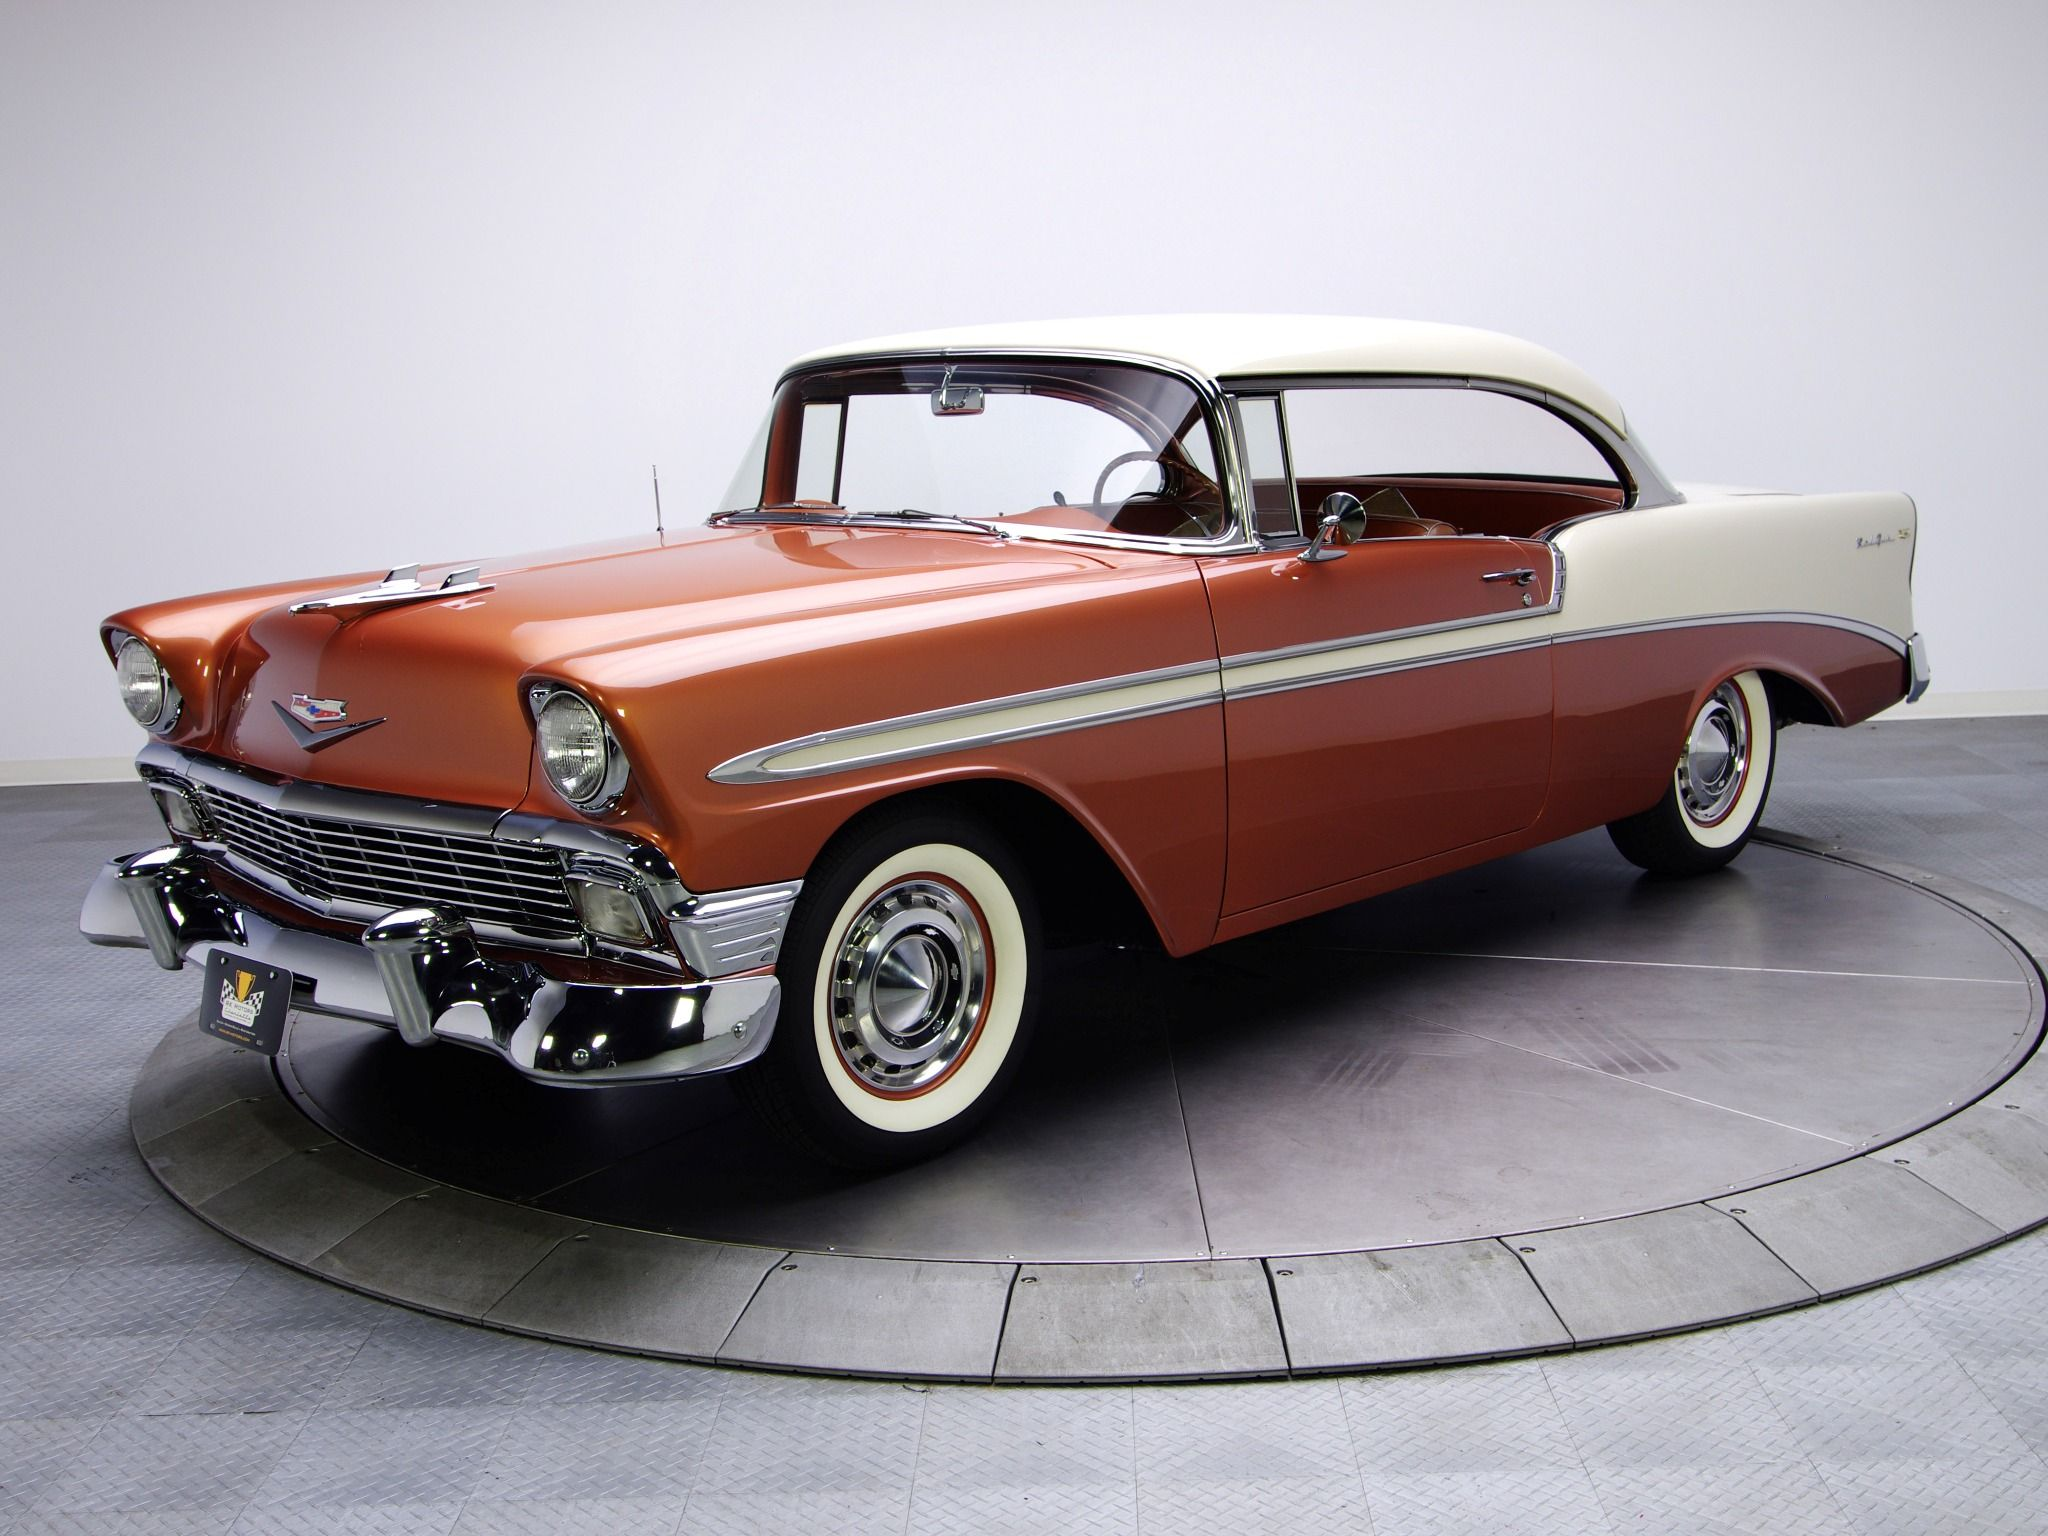 1956 chevrolet bel air for sale classic car liquidators - 1956 Chevrolet Bel Air Sport Coupe